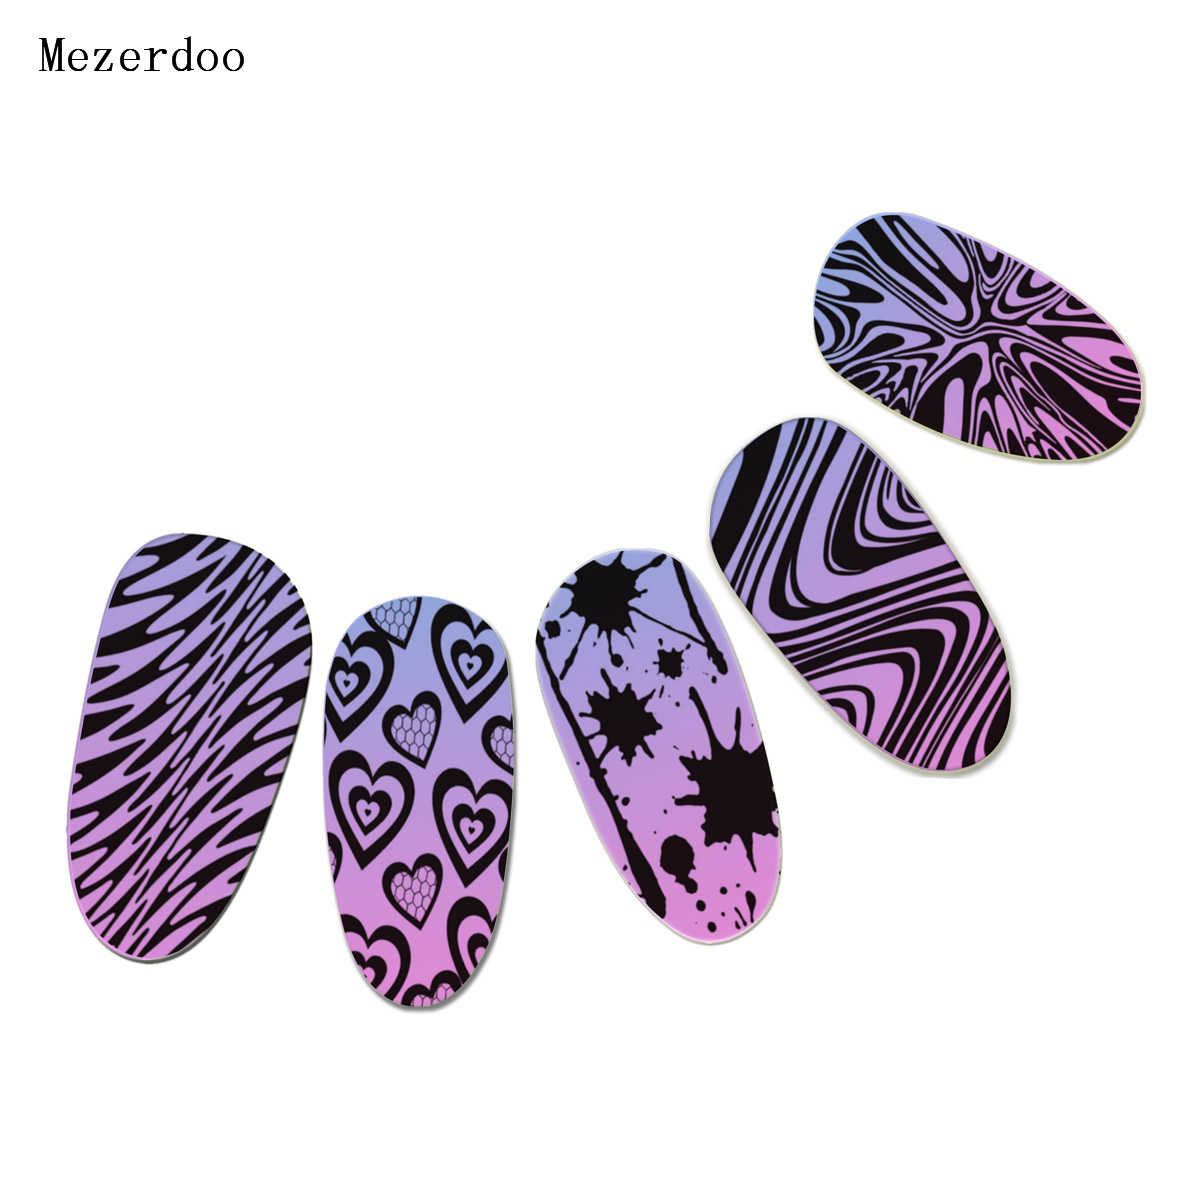 Zebra Pattern Nail Art Templates Classical Wave Leopard Stripe Bloody  Designs Stamp Polish Stainless DLY Nail Stamping Plates B4